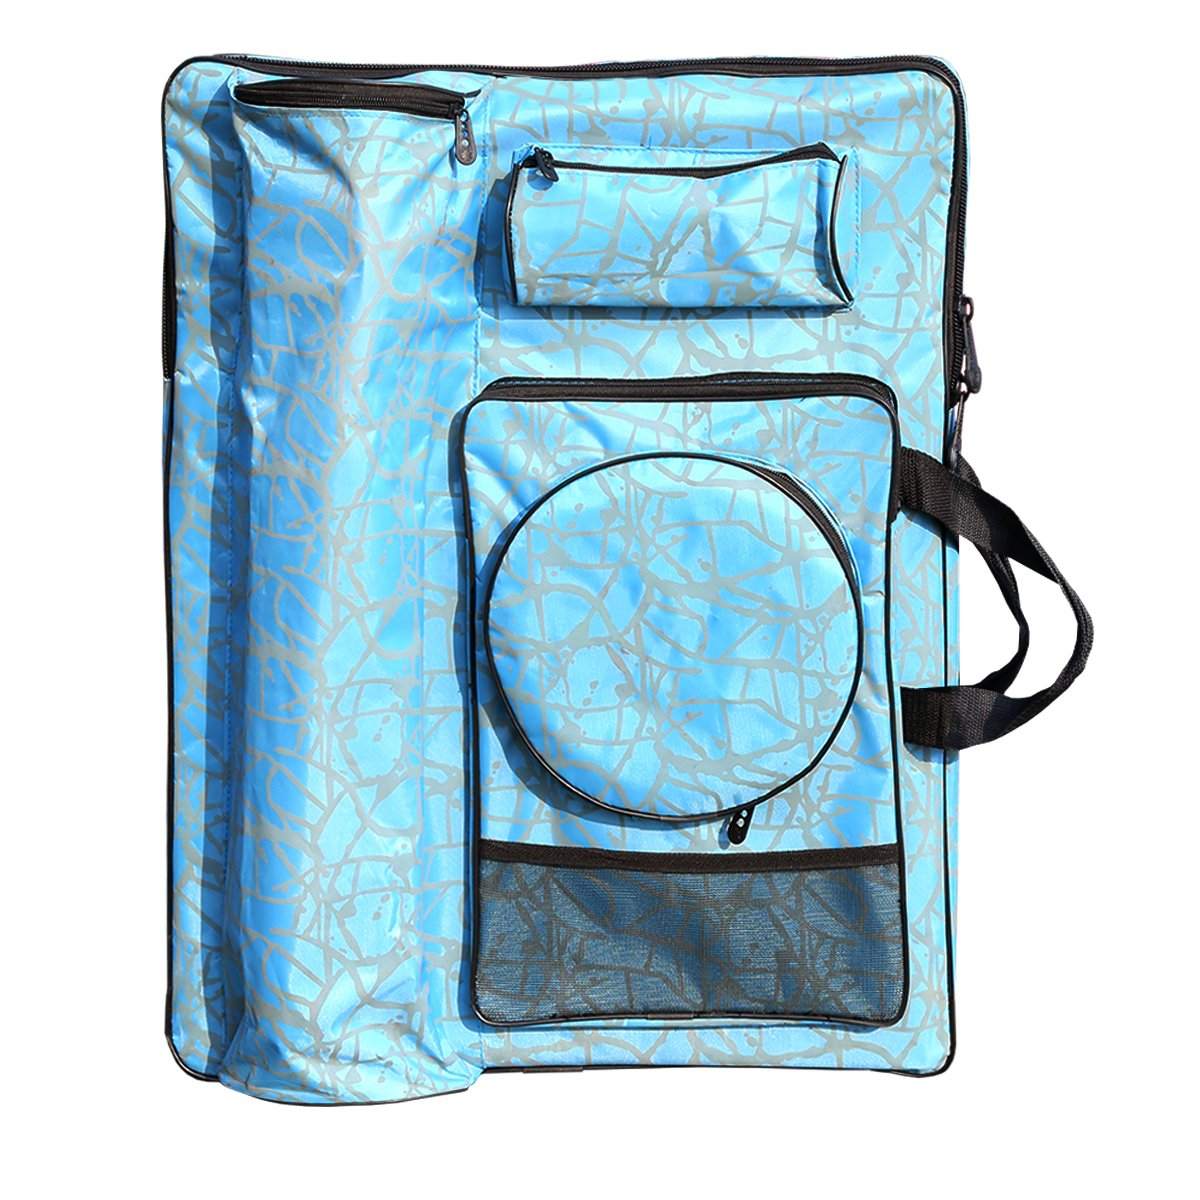 Artoop Large Art Portfolio Carry and Backpack Bag Blue Color Size 26.3''x18.9'' ltd